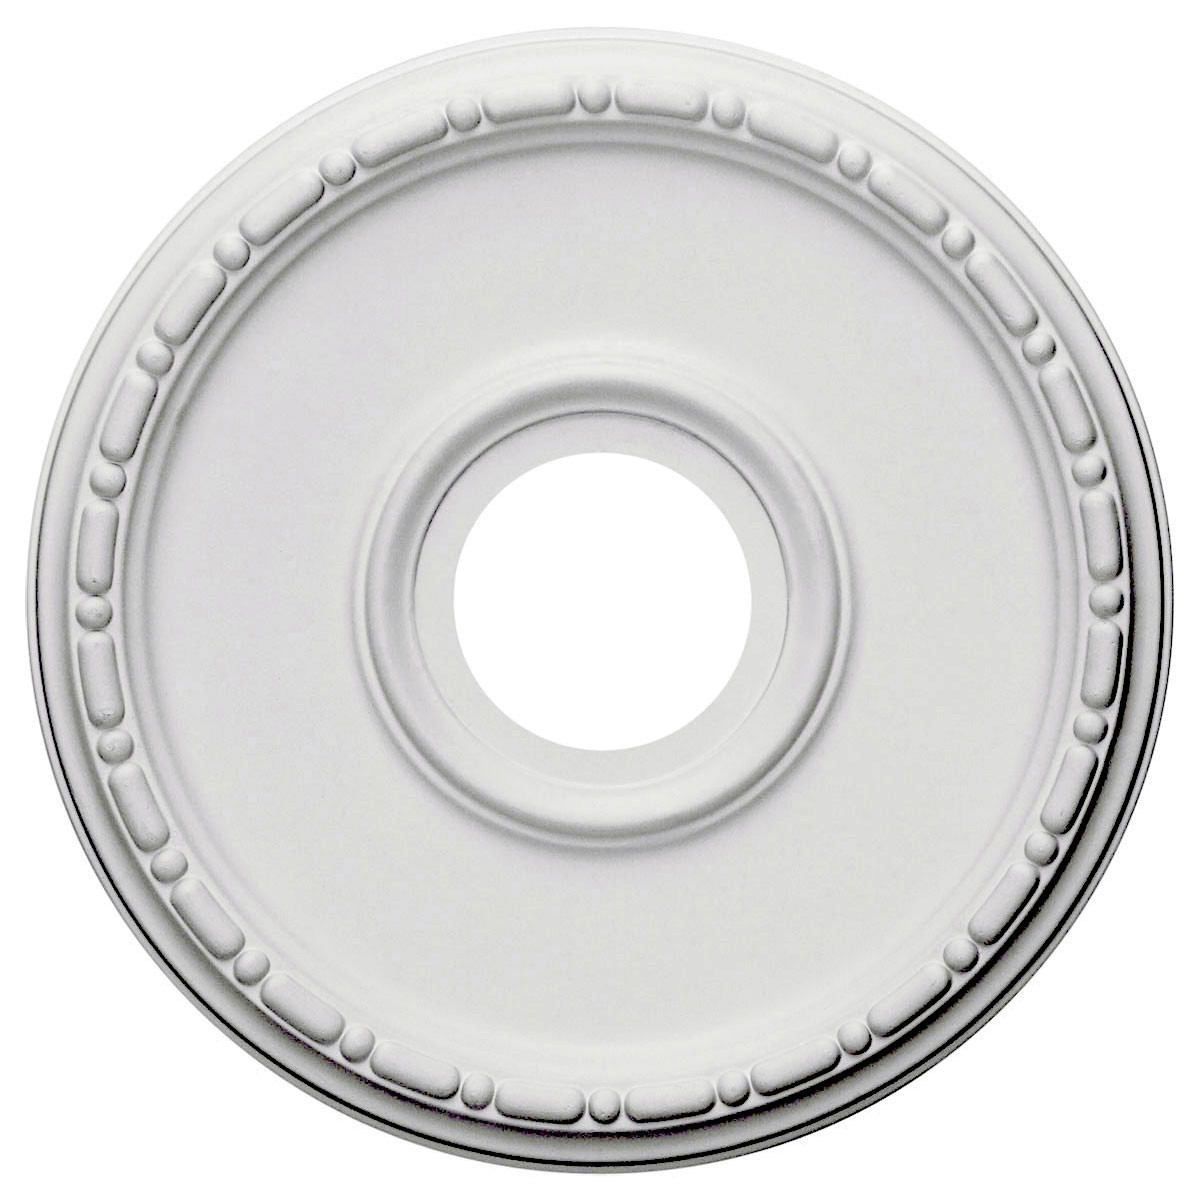 """EM-CM16ME - 16 1/2""""OD x 3 7/8""""ID x 1 1/2""""P Medea Ceiling Medallion (Fits Canopies up to 5 3/8"""")"""